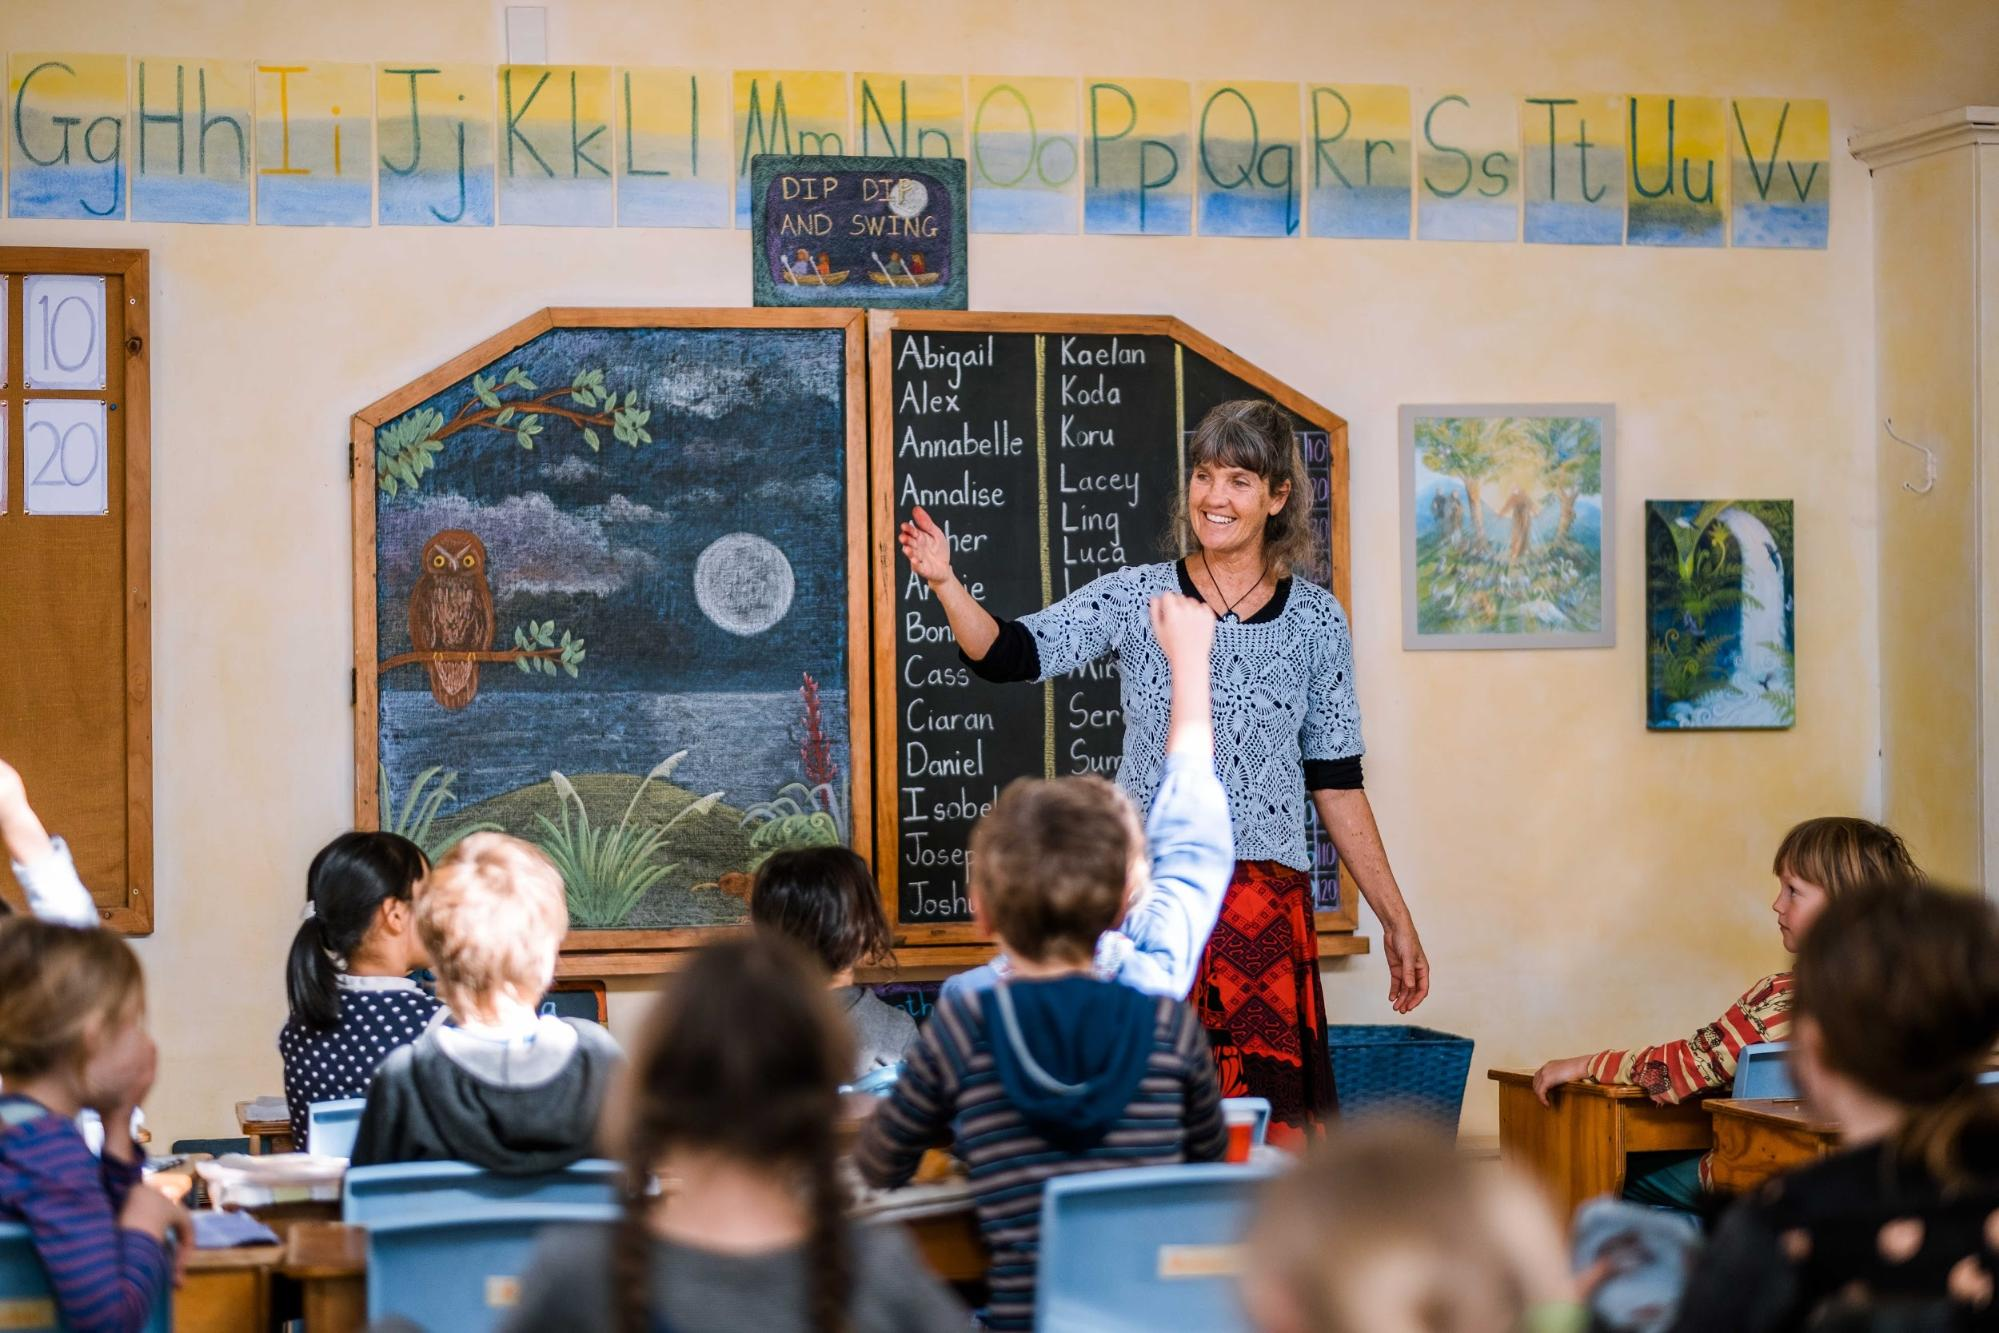 Teacher and children in Steiner school classroom